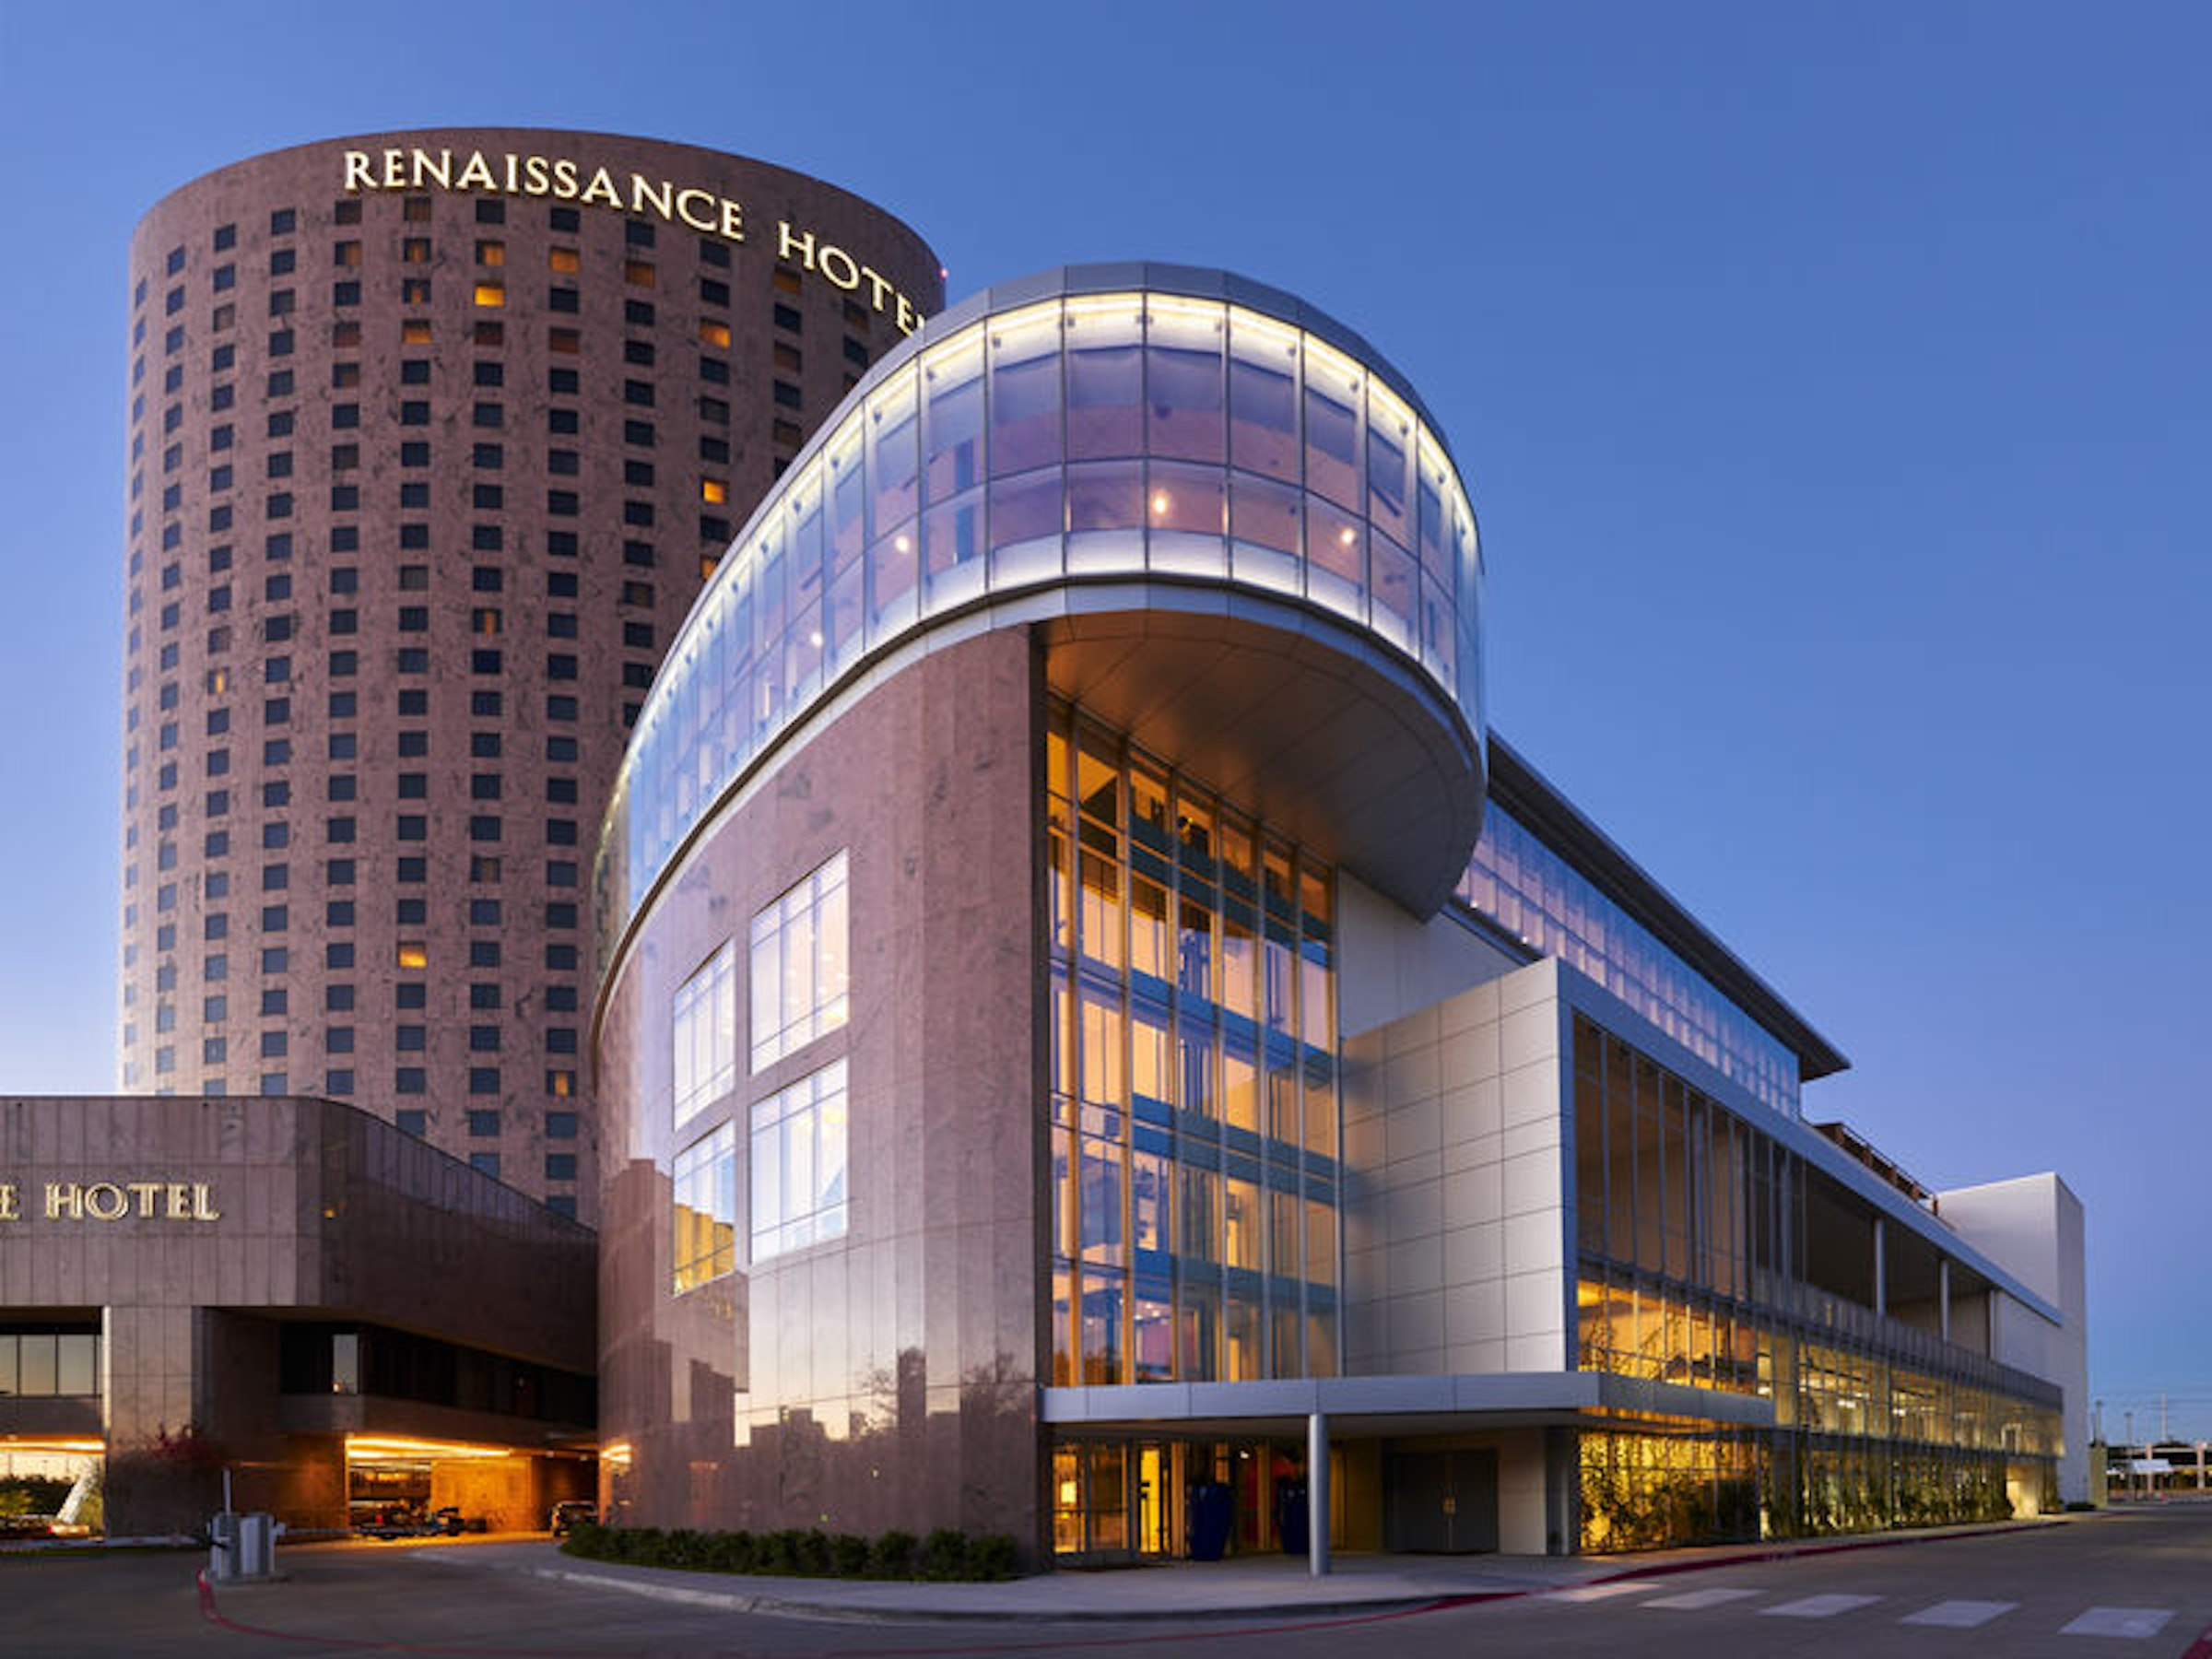 Renaissance Dallas Hotel in Beyond Dallas